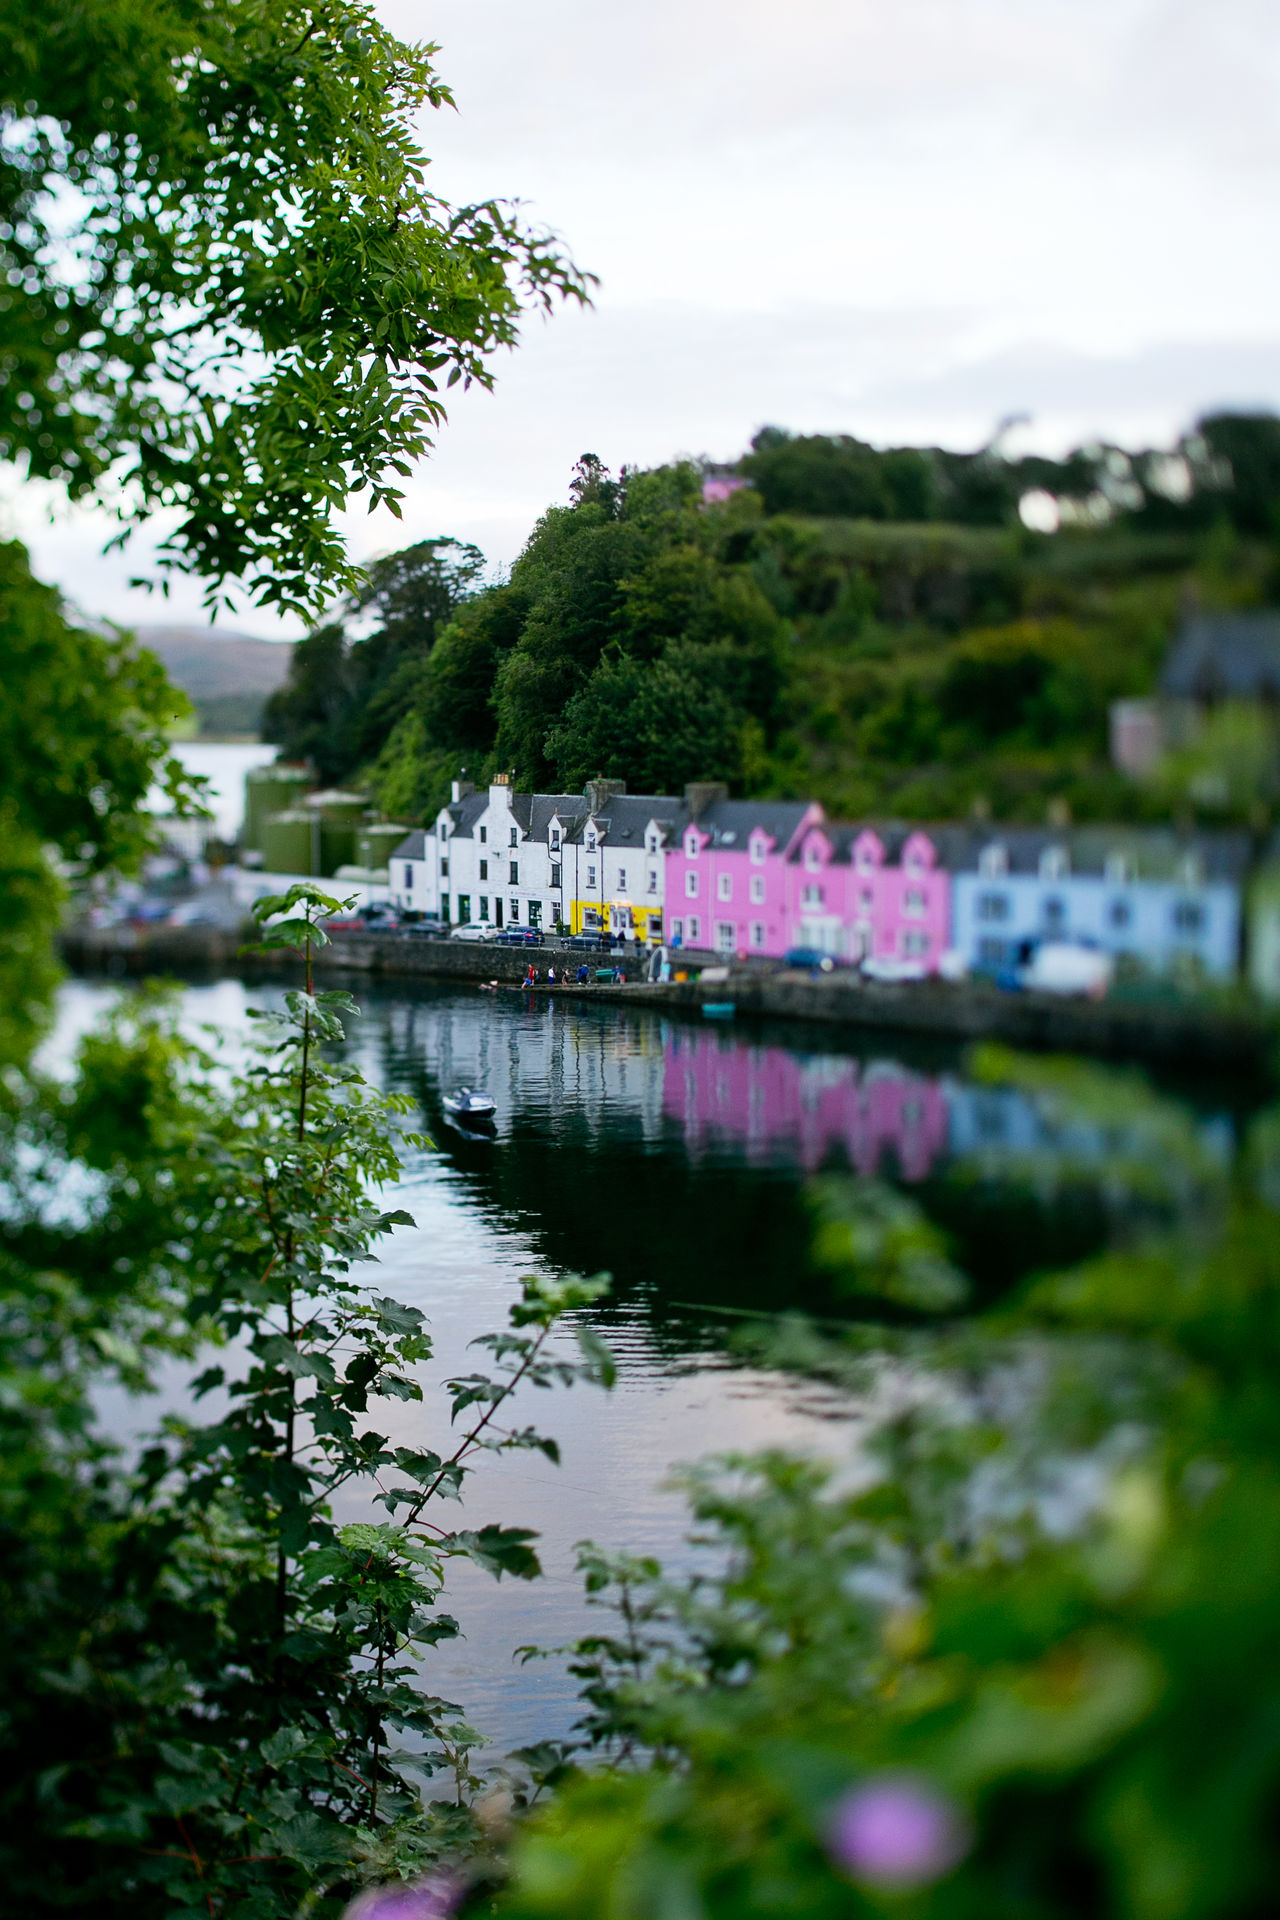 Portree Harbour and Pier Beauty In Nature Day Floating On Water Flower Harbour Idyllic Lake Nature Nautical Vessel No People Outdoors Pedal Boat Pier Portree Reflection Sky Travel Destinations Tree Water